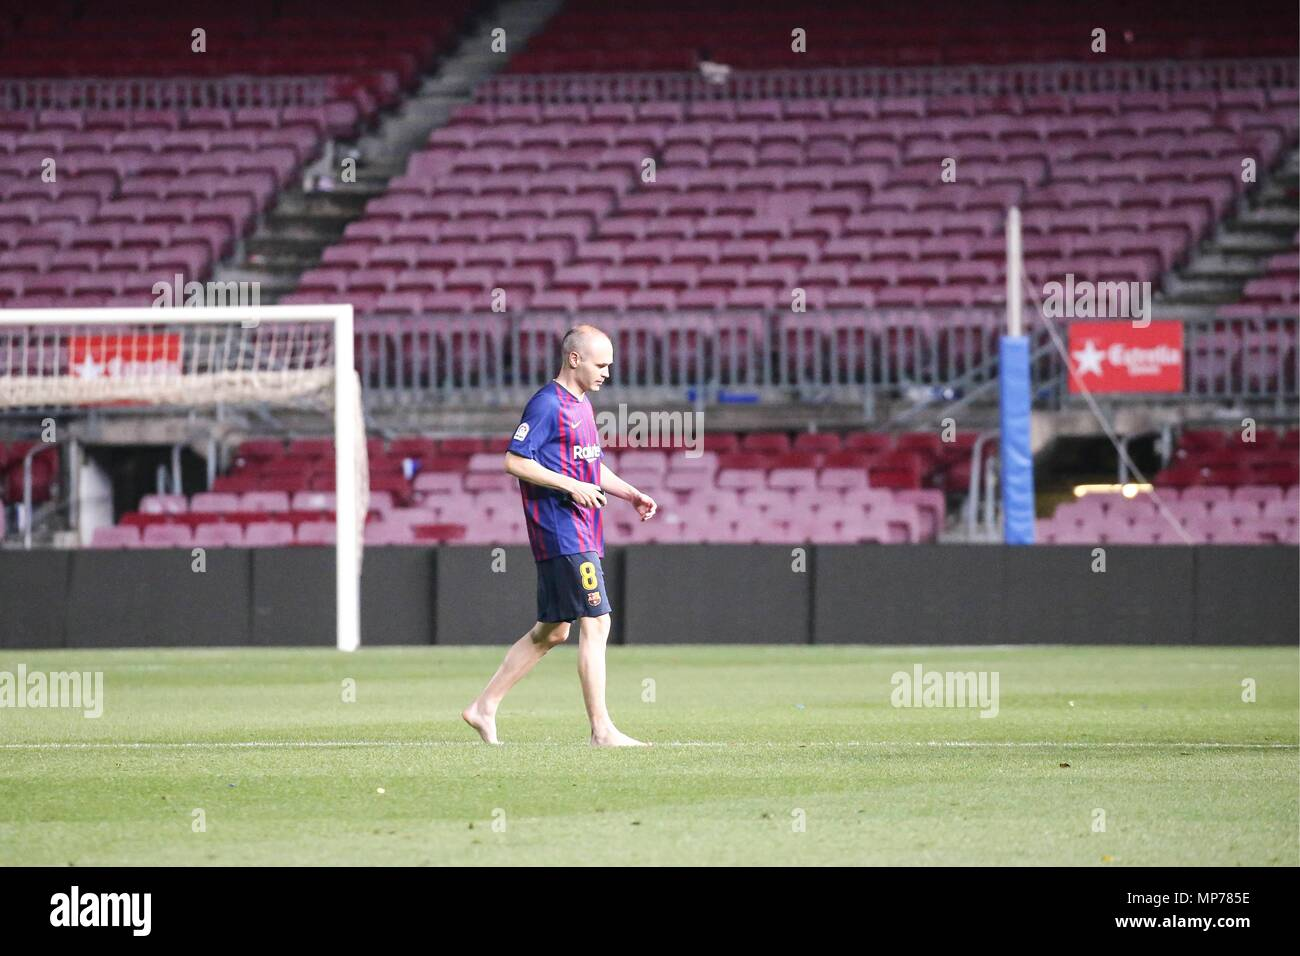 SPAIN - 21th of May: Andres Iniesta alone in the grass after  the match between FC Barcelona against Real Sociedad for the round 38 of the Liga Santander, played at Camp Nou Stadium on 21th May 2018 in Barcelona, Spain. (Credit: Mikel Trigueros /Urbanandsport / Cordon Press)  Cordon Press - Stock Image